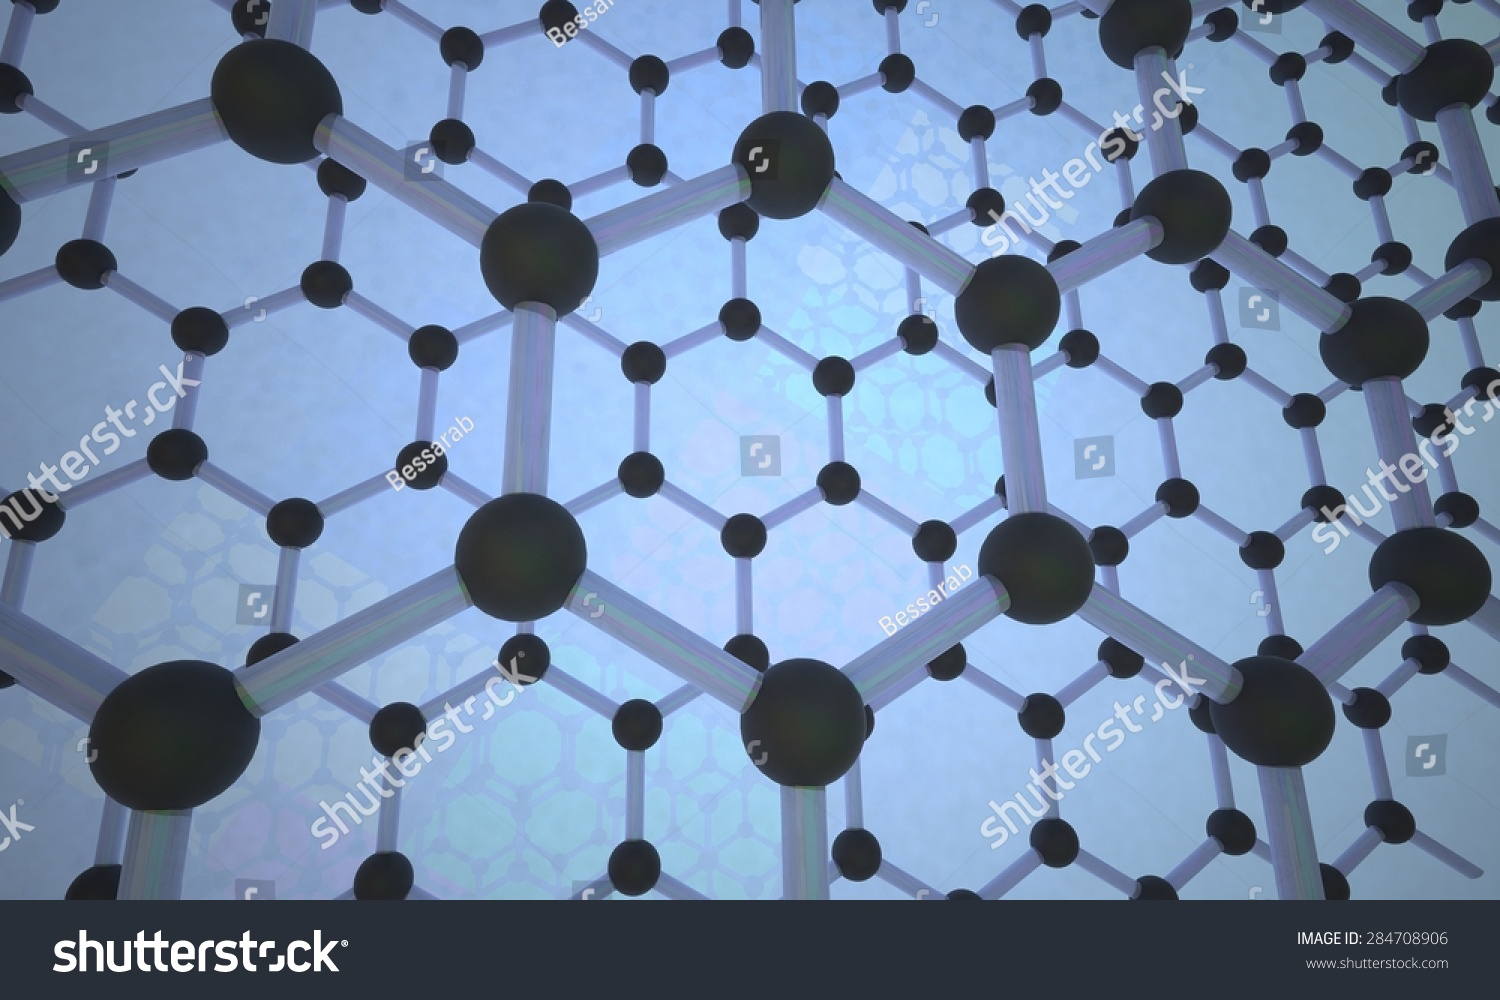 Graphene. Crystal Lattice Stock Photo 284708906 : Shutterstock